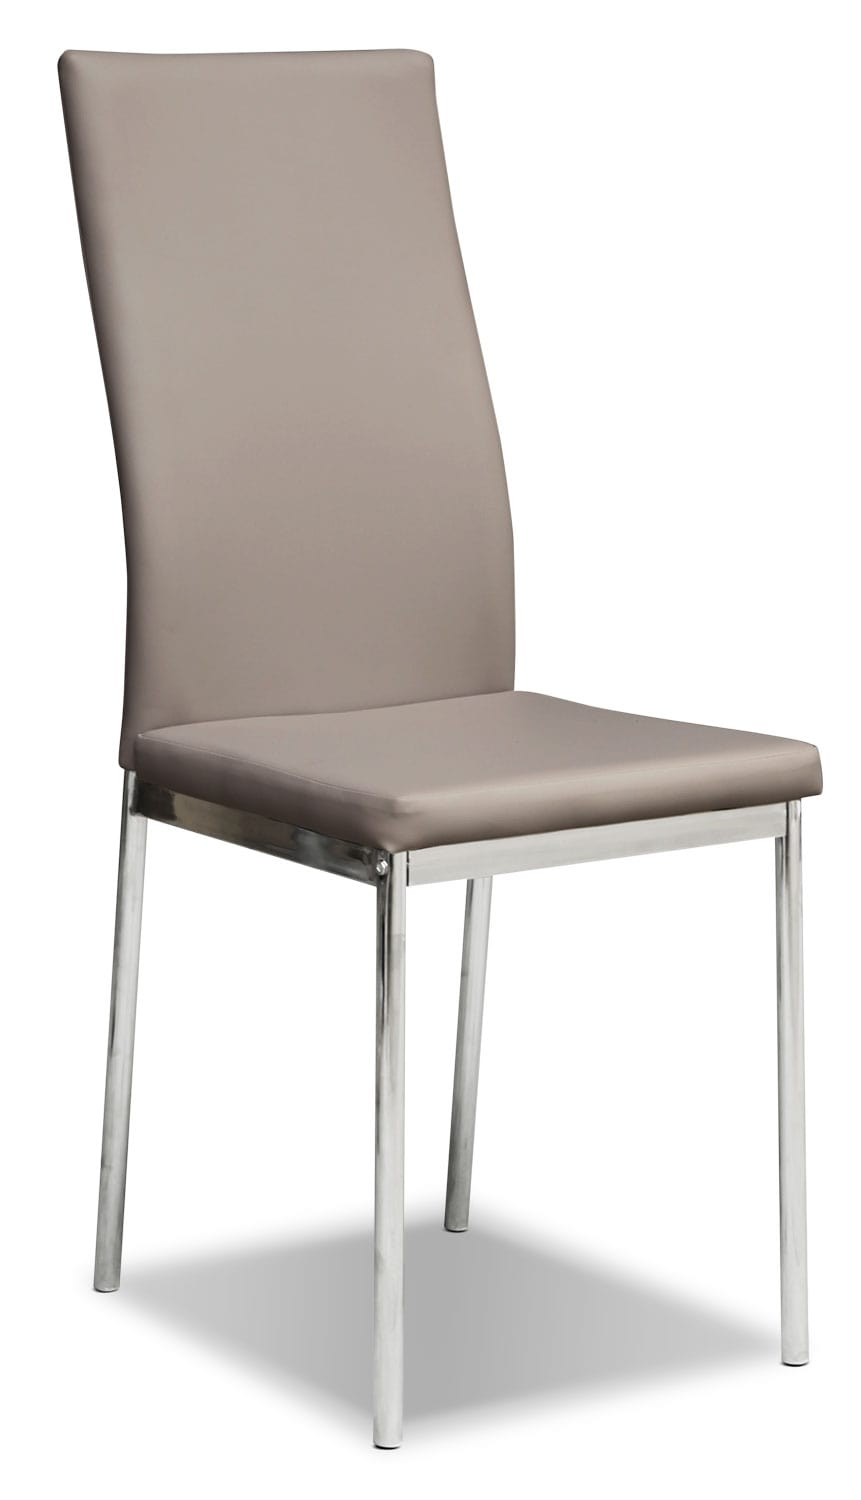 Koda Dining Chair - Taupe